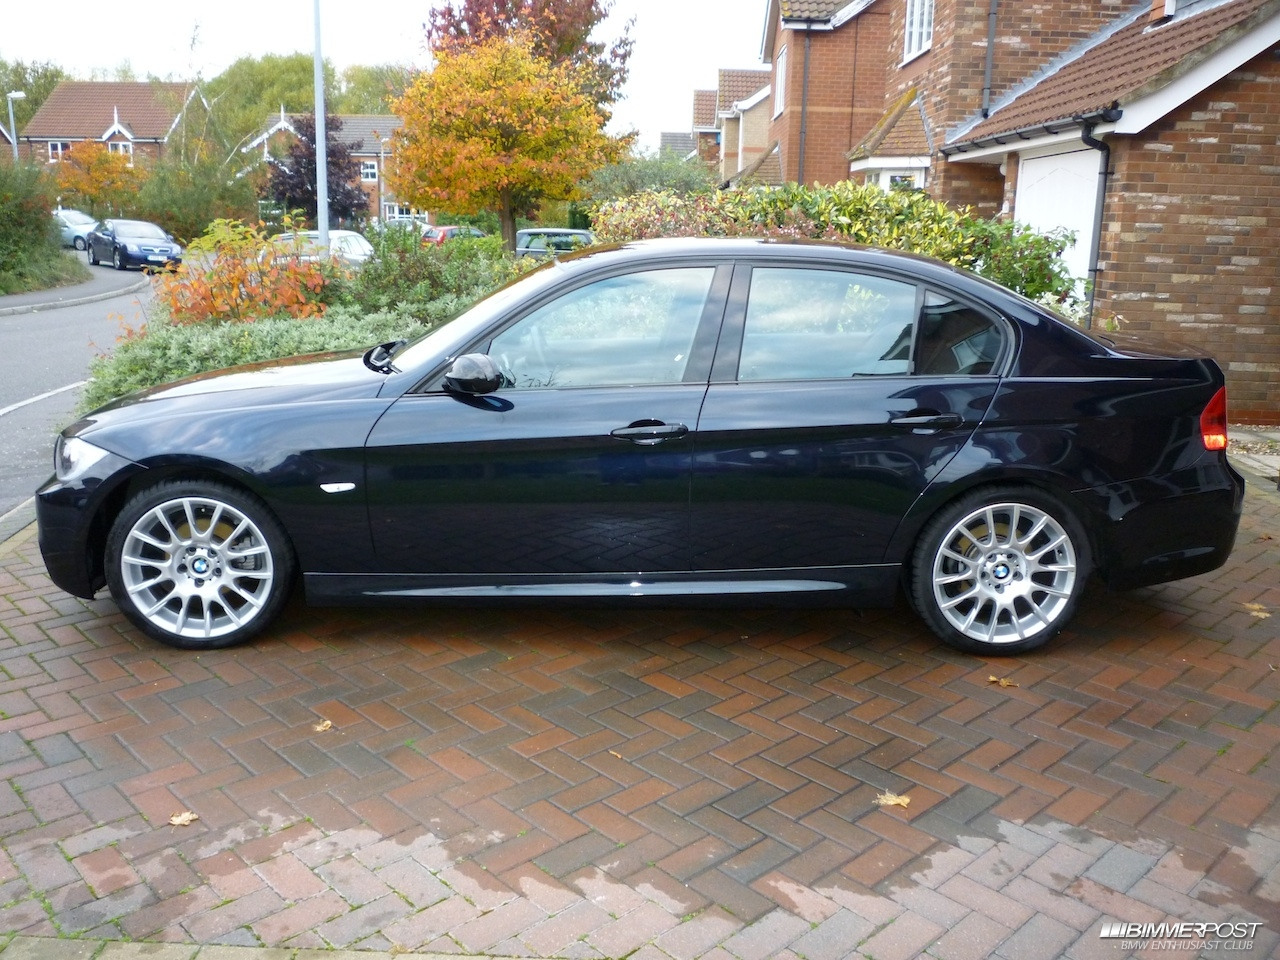 jrah\'s 2006 BMW 320si - BIMMERPOST Garage